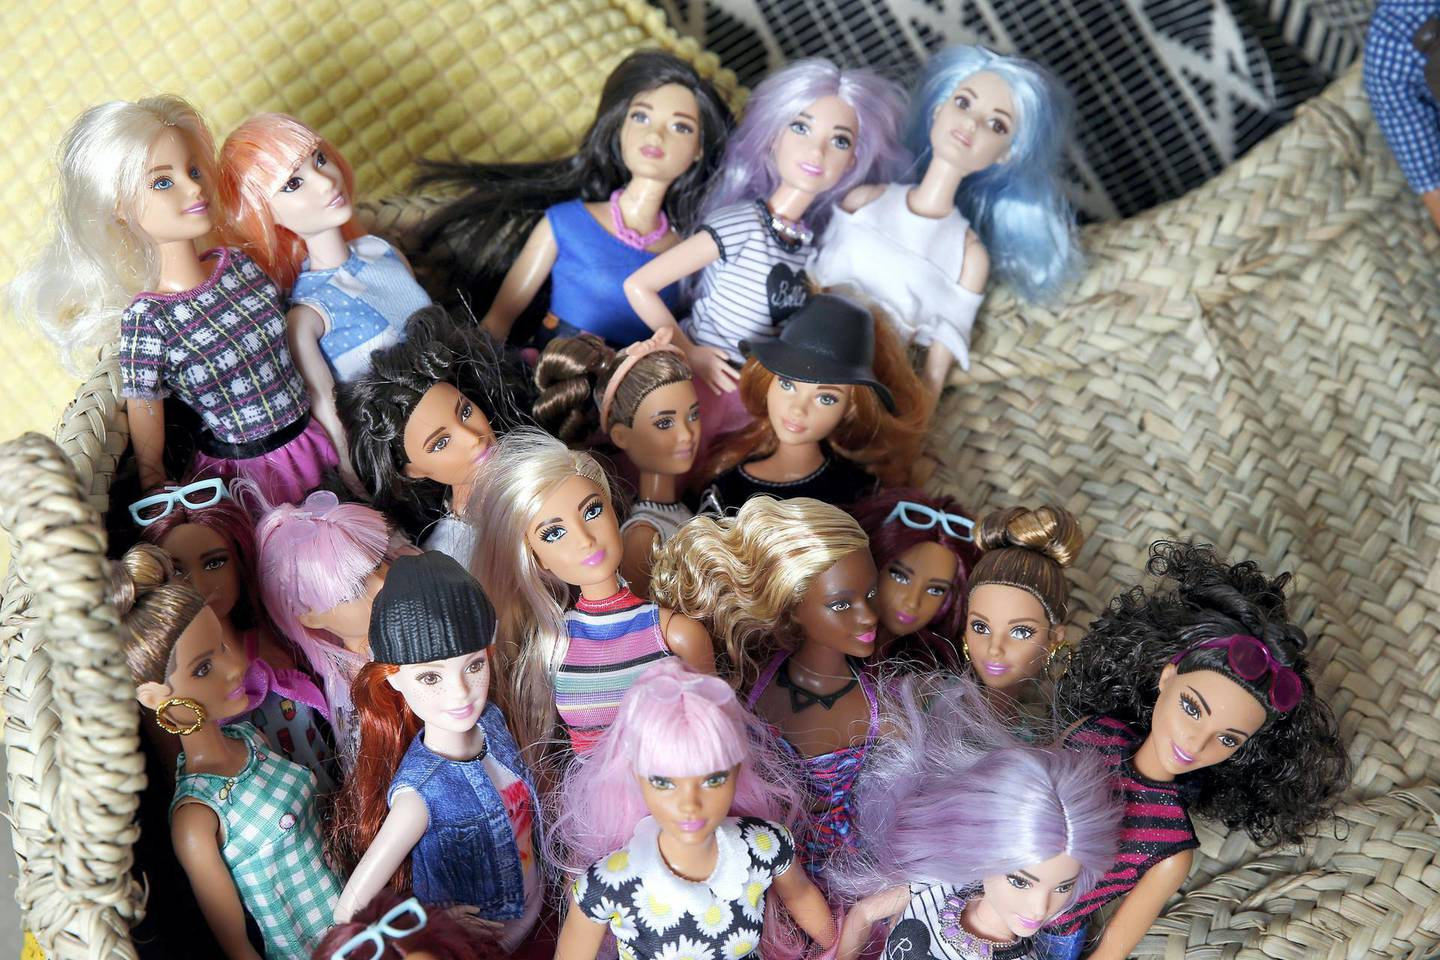 """PARIS, FRANCE - OCTOBER 20:  Barbie dolls from the 2017 """"Barbie Fashionistas"""" collection are displayed during an exhibition at Hotel Le Moliere on October 20, 2017 in Paris, France. Barbie expands its range of Fashionistas dolls with 15 new Ken dolls and 24 new Barbie dolls. The exhibition takes place on October 21 and 22, 2017.  (Photo by Chesnot/Getty Images)"""